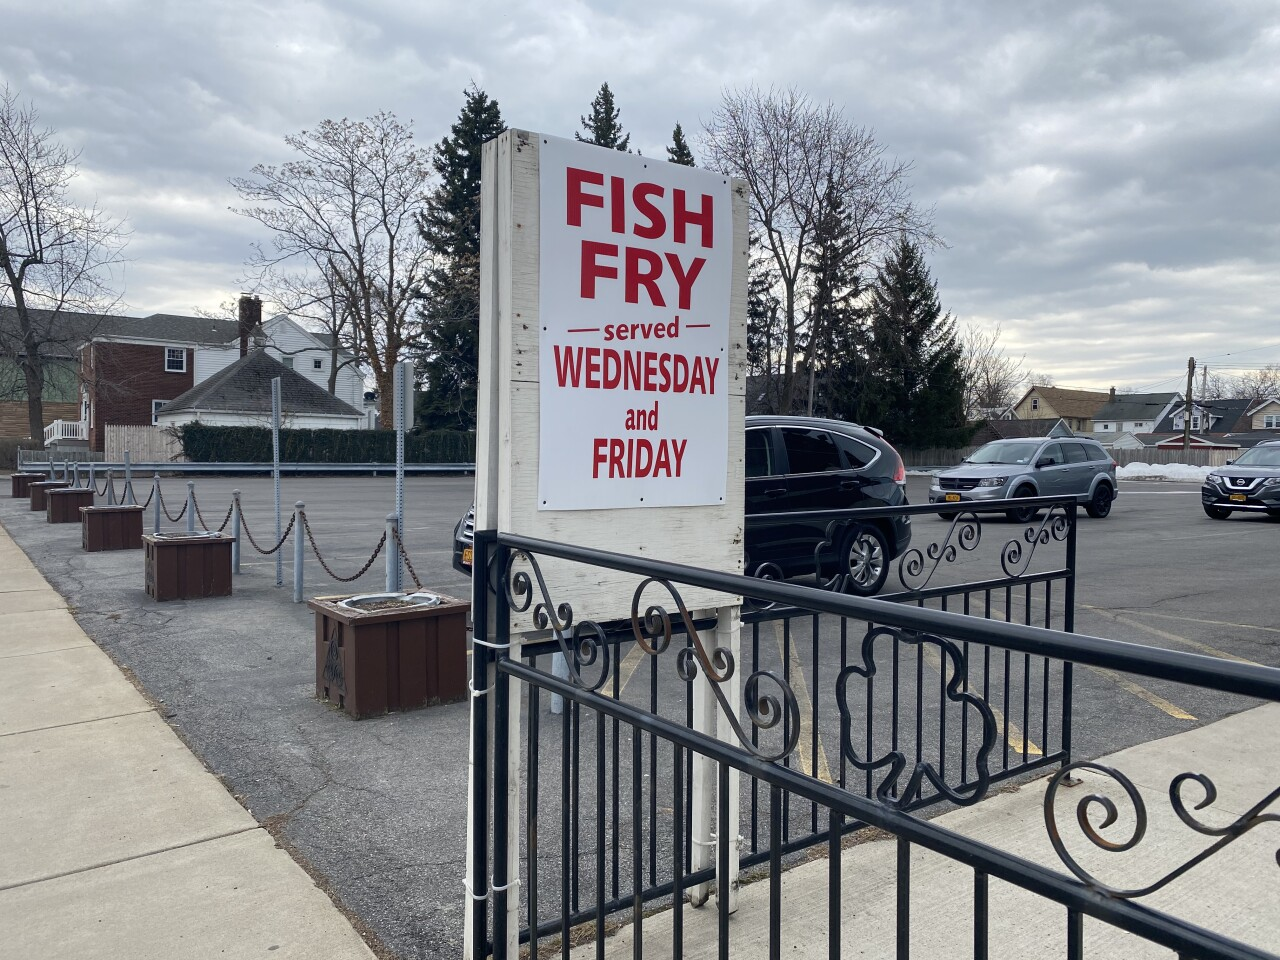 St. Patty's day falls on a Fish Fry day at the Buffalo Irish Center this year